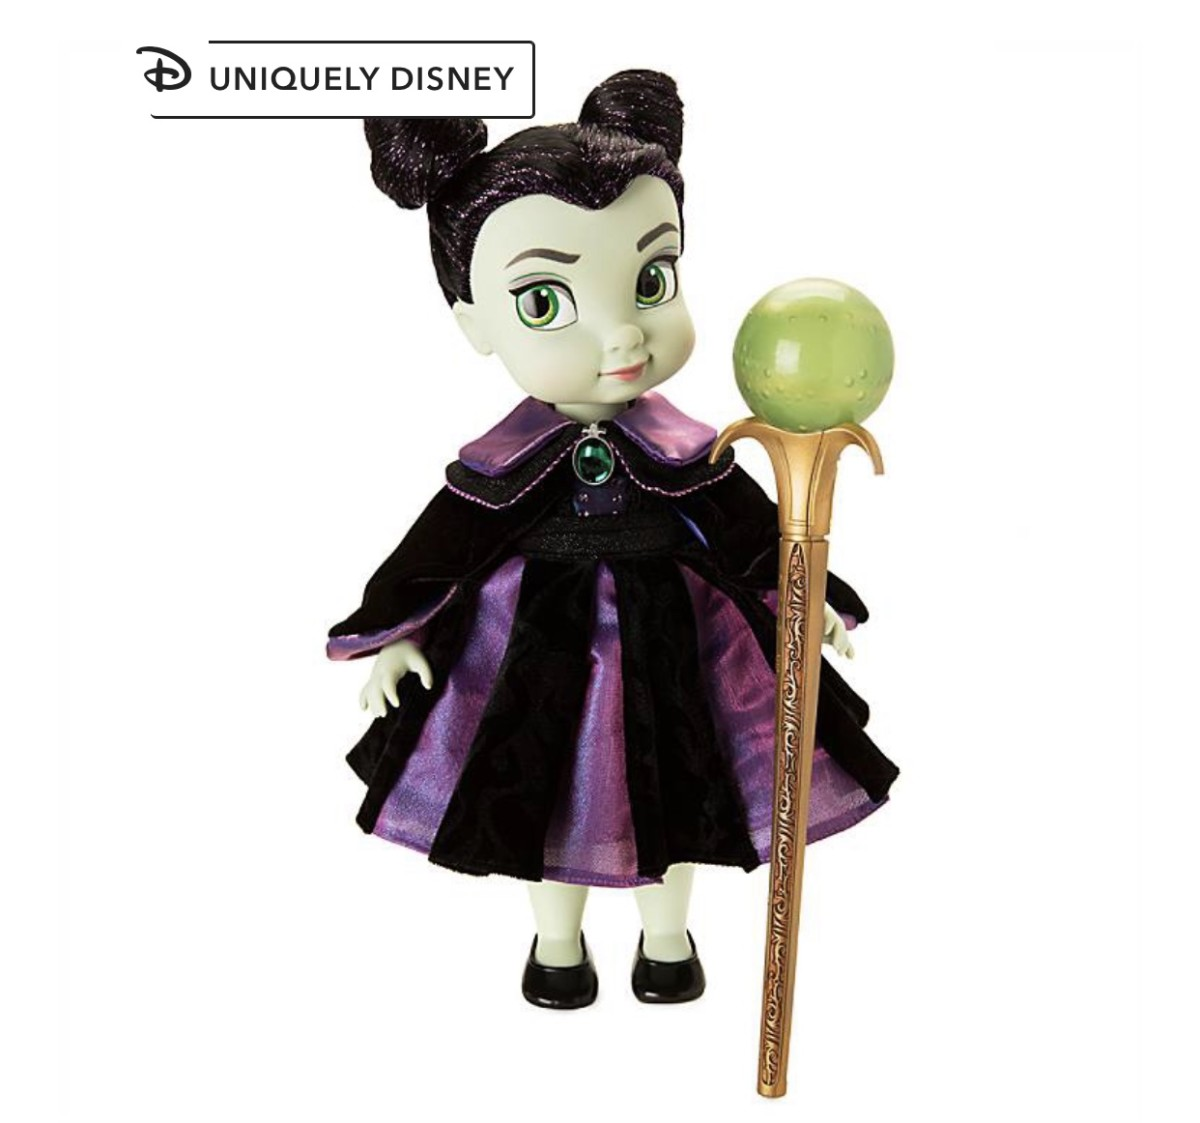 Double Trouble: NEW Maleficent & Ursula Animators' Dolls are Here! 15